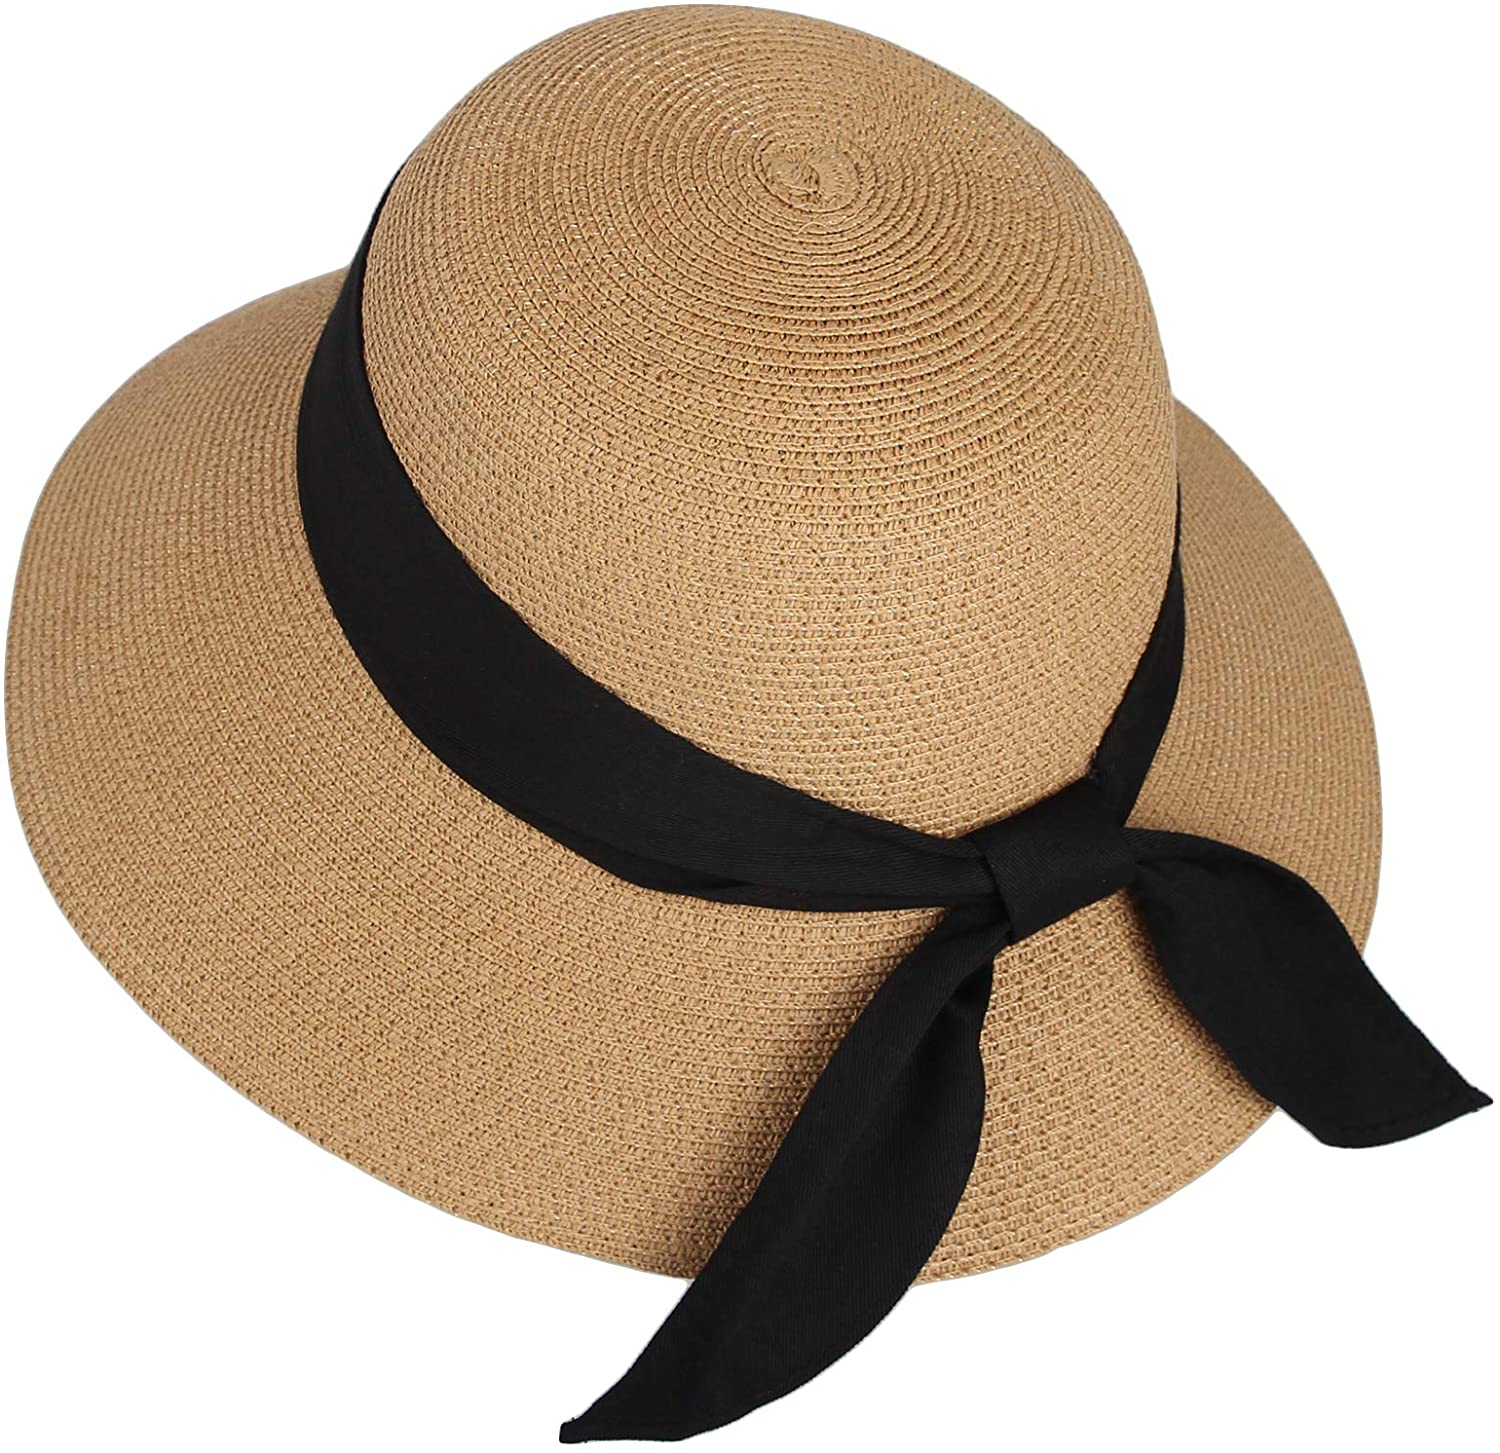 WITHMOONS Floppy Summer Beach Sun Hat Paper Straw Ribbon Banded KR91202 (Beige)